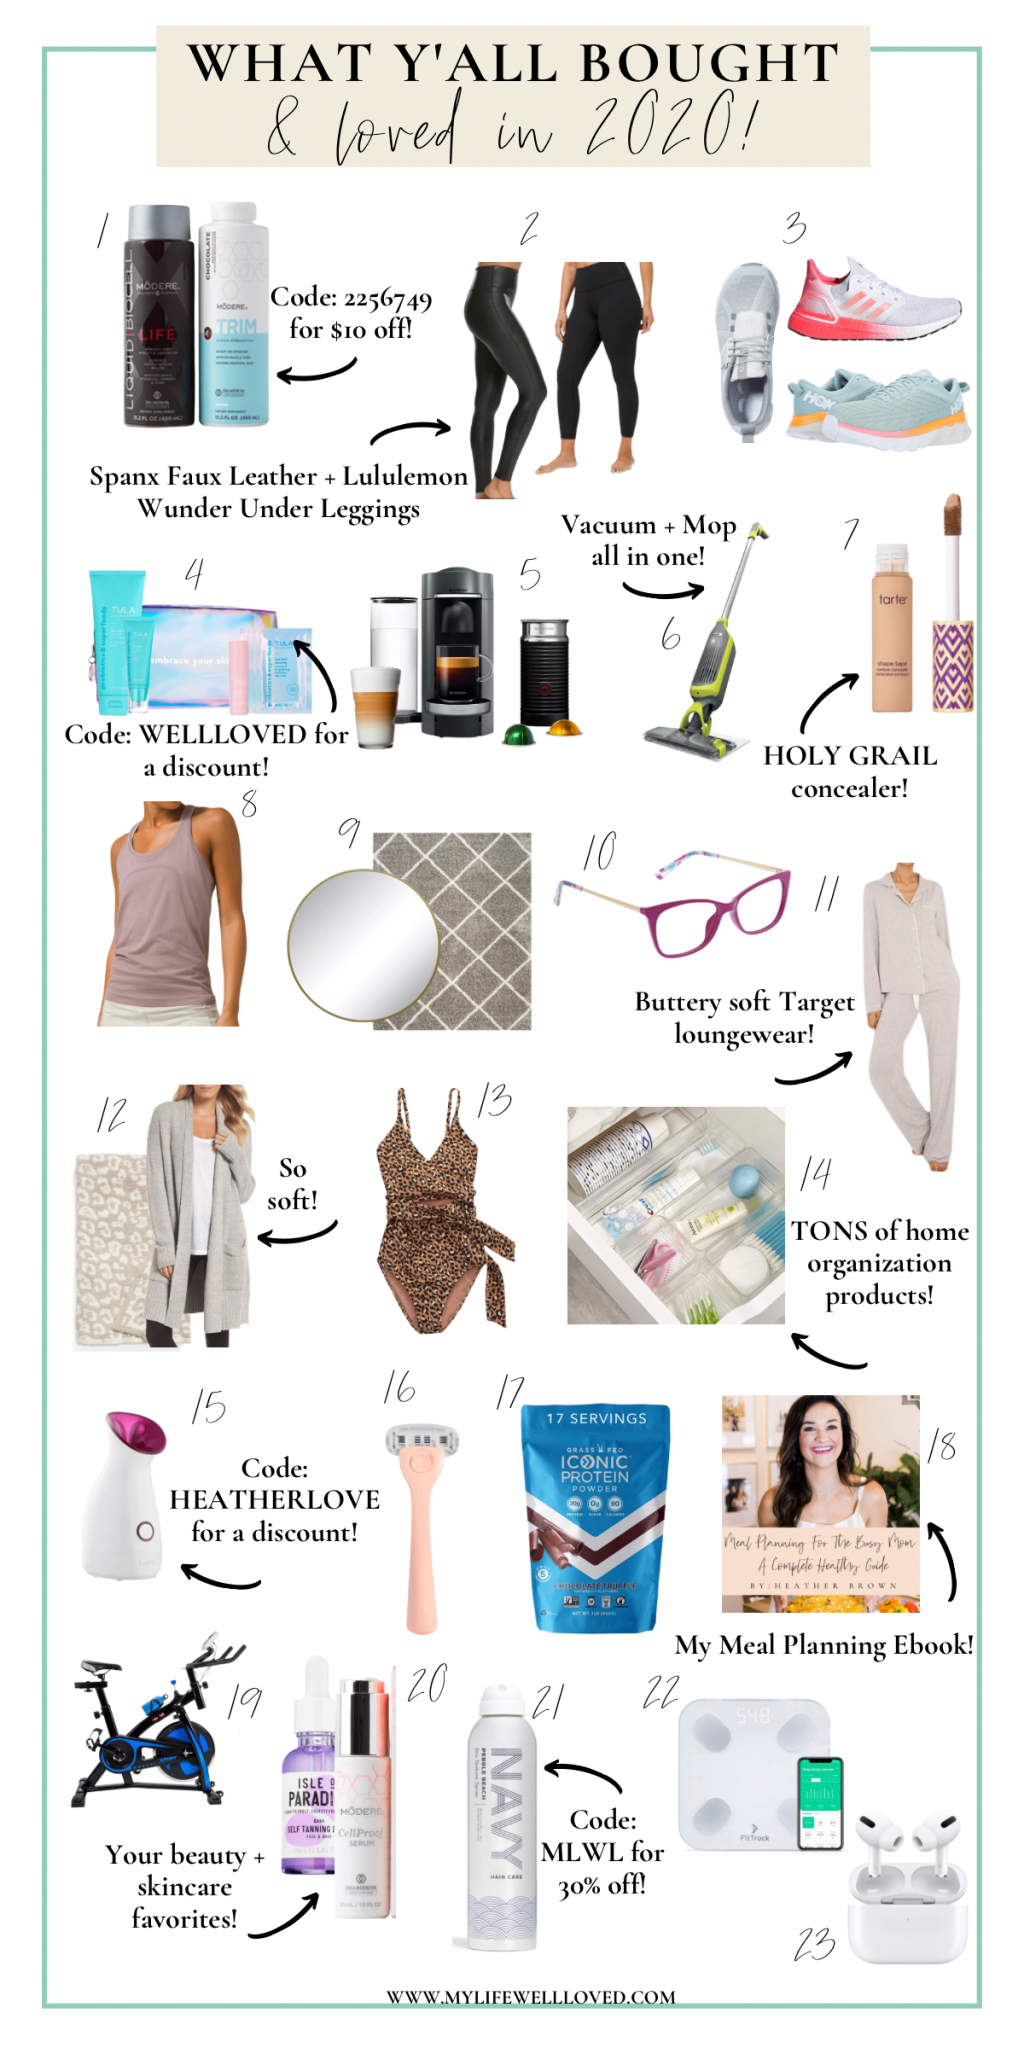 2020 Favorites: Top 20+ Purchases YOU Loved by Alabama Life + Style blogger, Heather Brown // My Life Well Loved